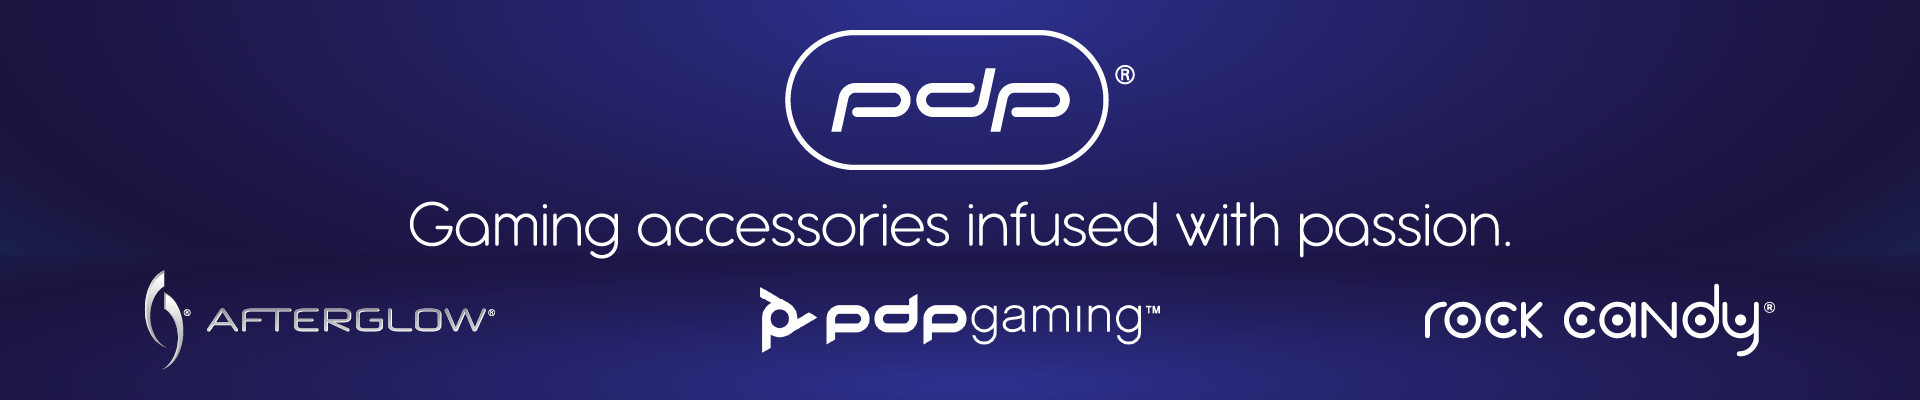 PDP Gaming accessories infused with passion